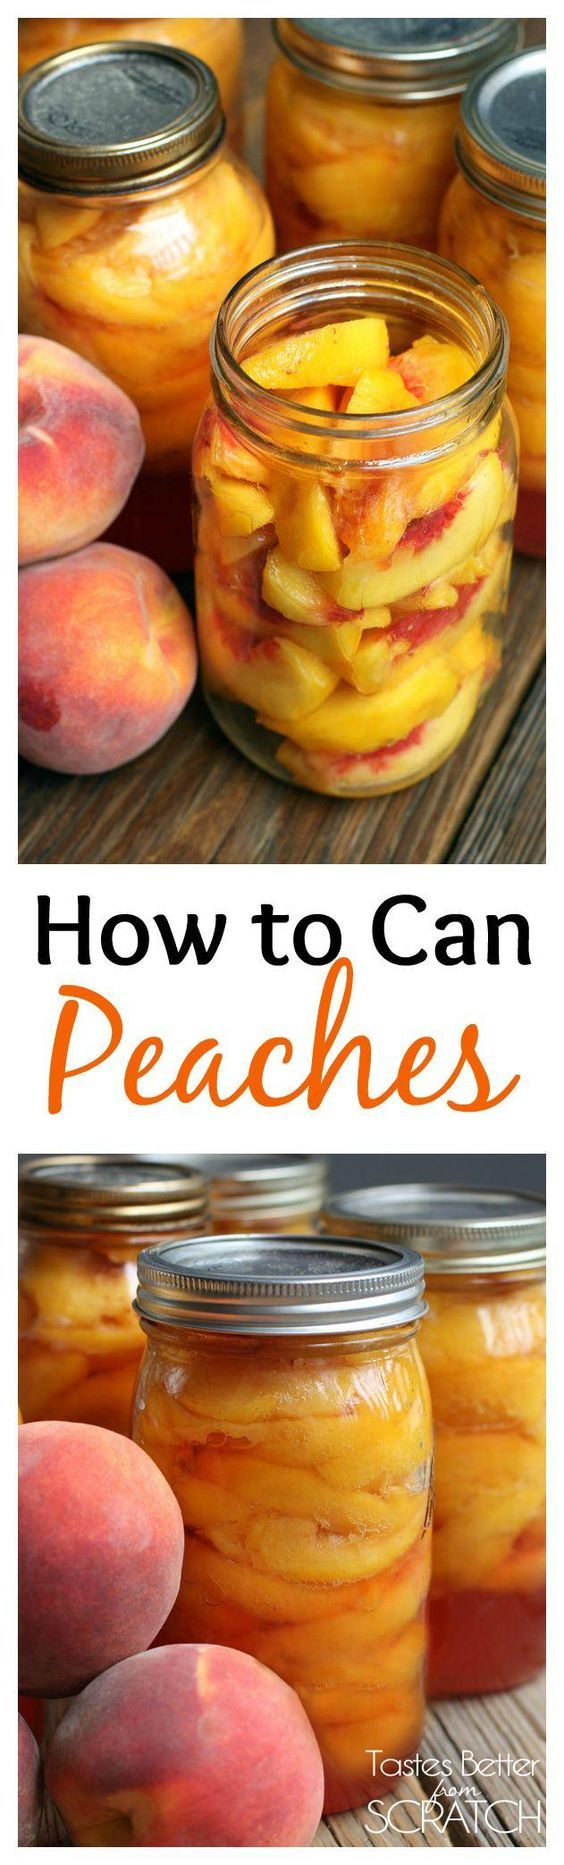 There's nothing better than home canned peaches! Find the easy instructions on TastesBetterFromS...: